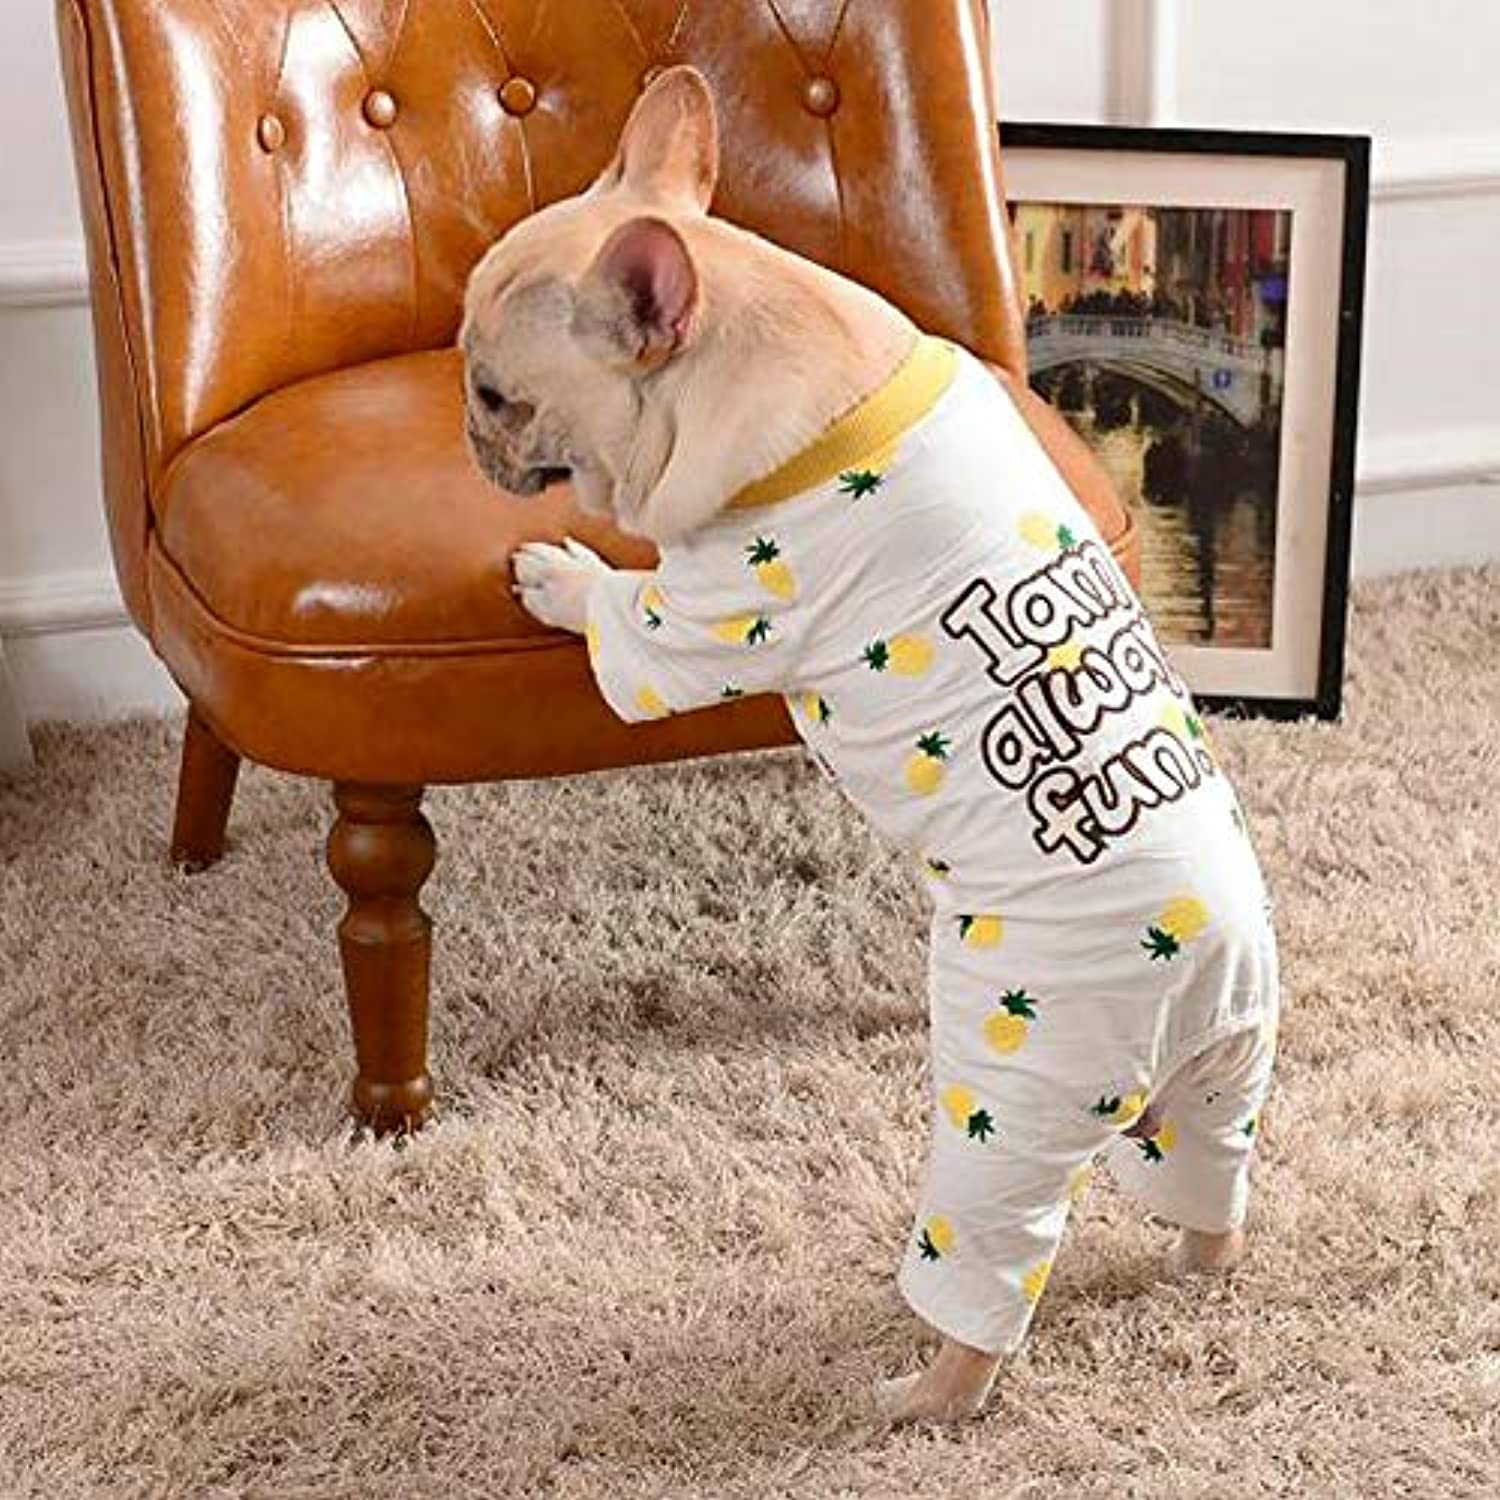 HUAIX petsuppliesmisc New pet clothes autumn and winter fourlegged clothes casual fourlegged clothes puppy clothes (color   White, Size   LL)